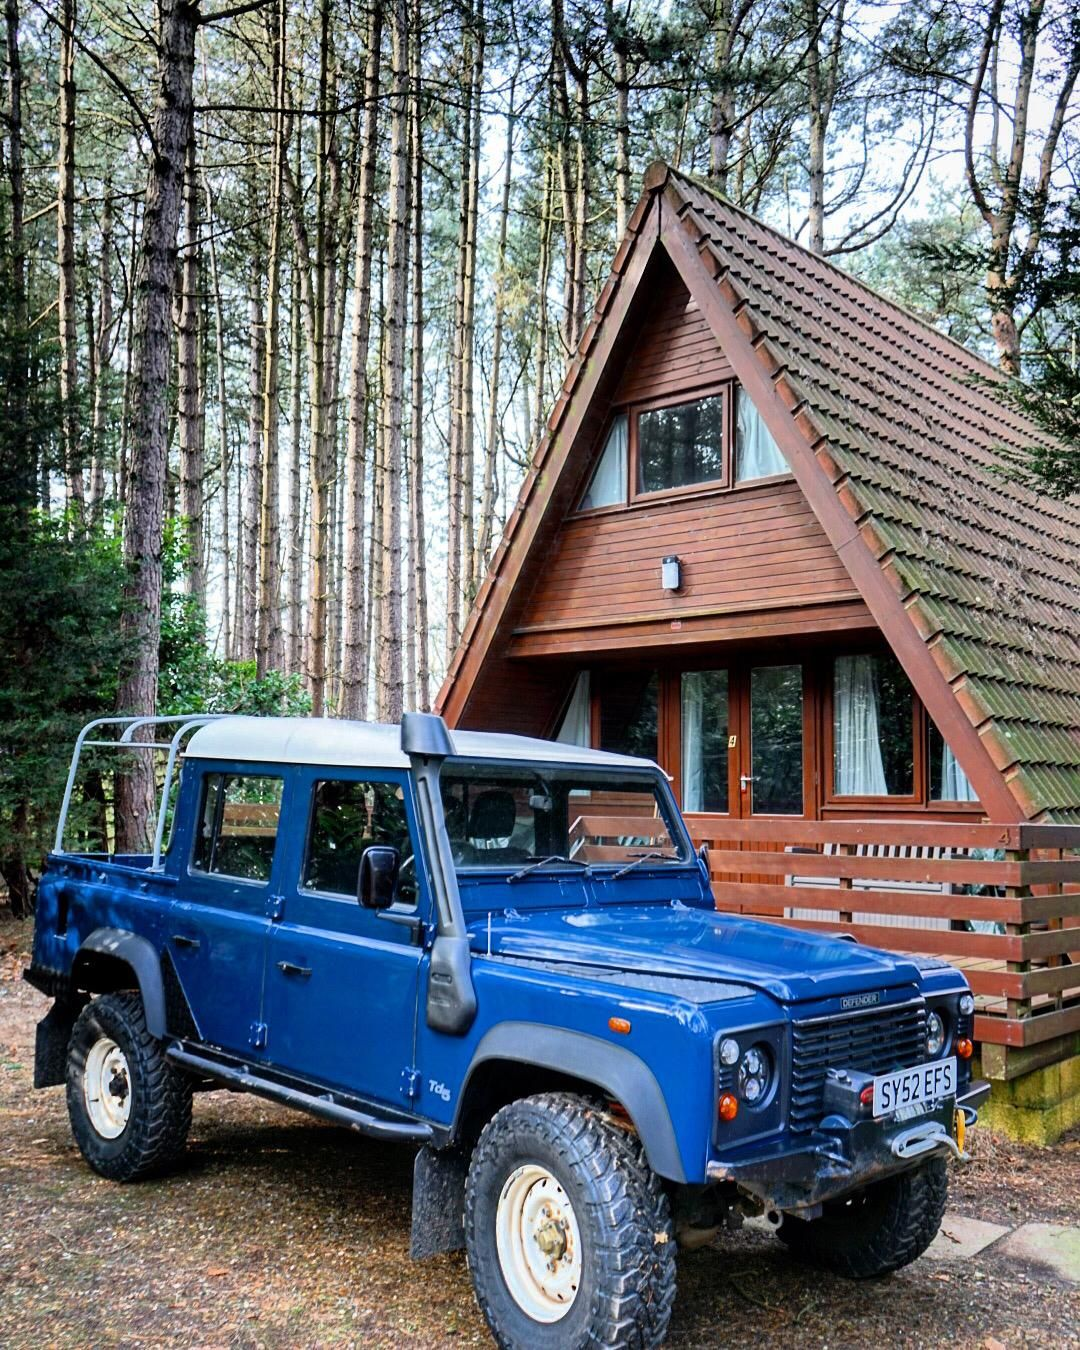 Land Rover Defender 110 Td5 Double Cab Pickup Outside Triangular